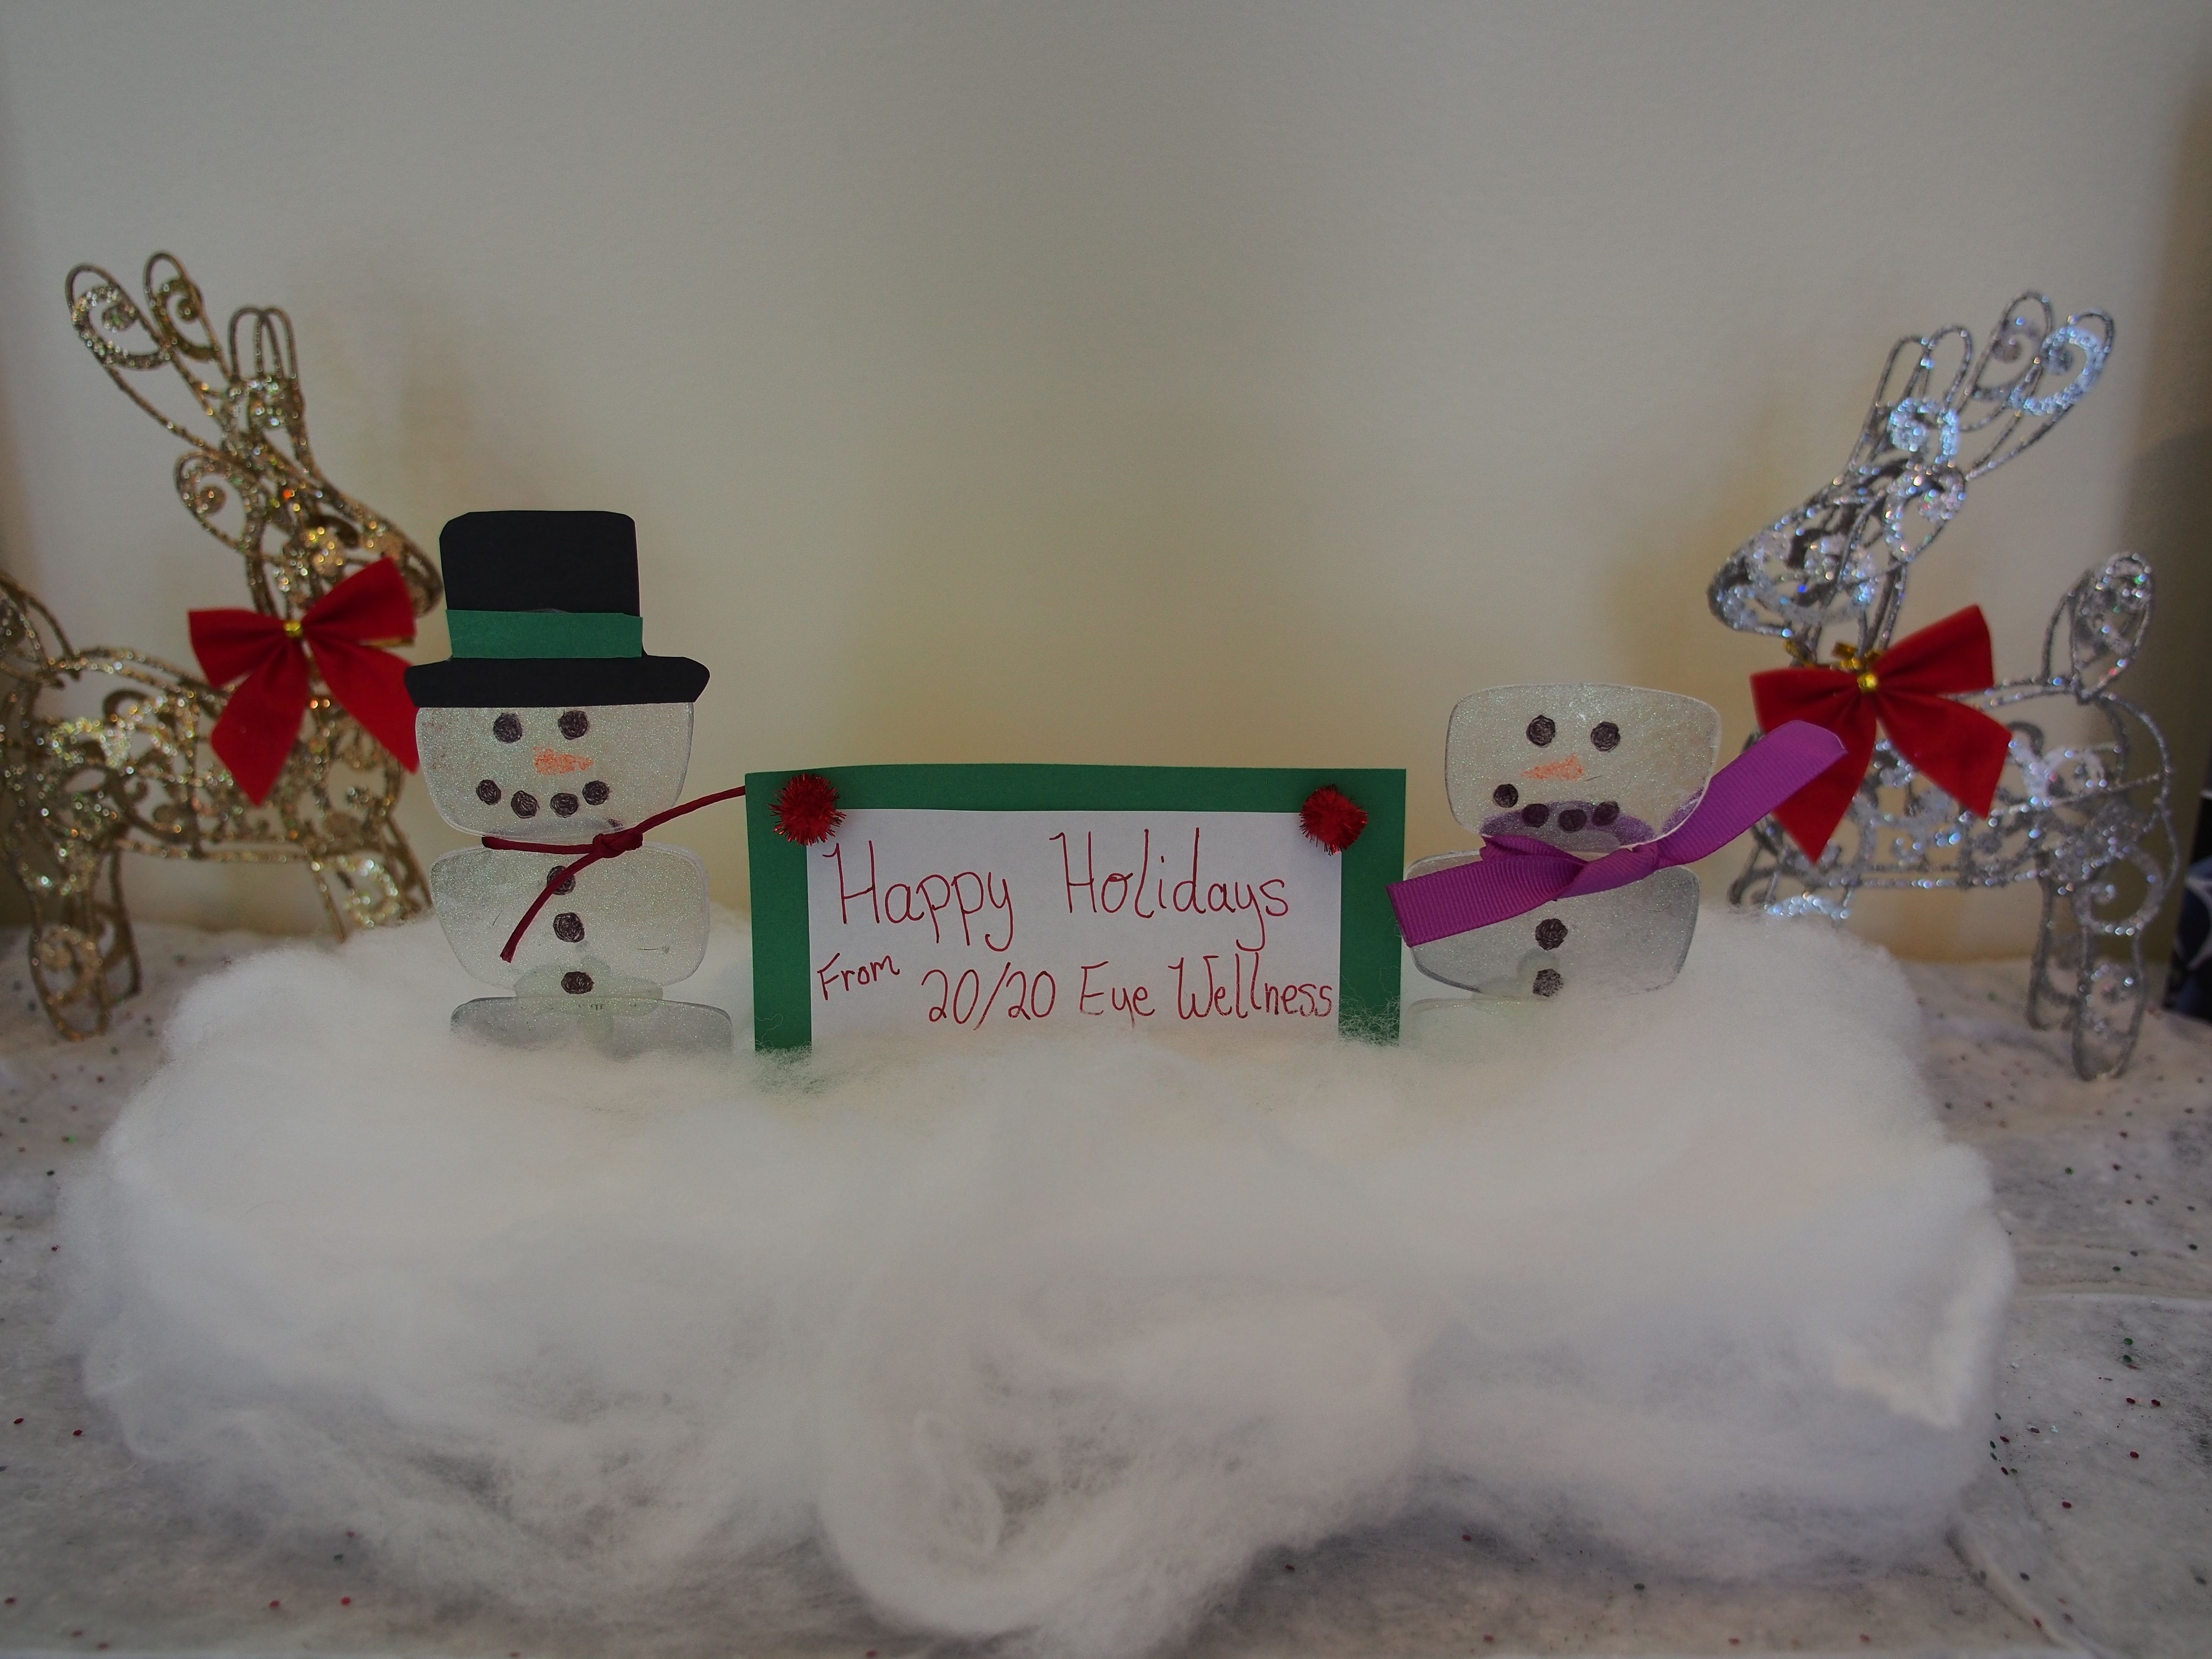 Snowmen Made From Old Eyeglass Lenses A Diy Holiday Craft Using Recycled Optical Lenses Perfect Decoration For Holiday Crafts Diy Holiday Crafts Diy Holiday